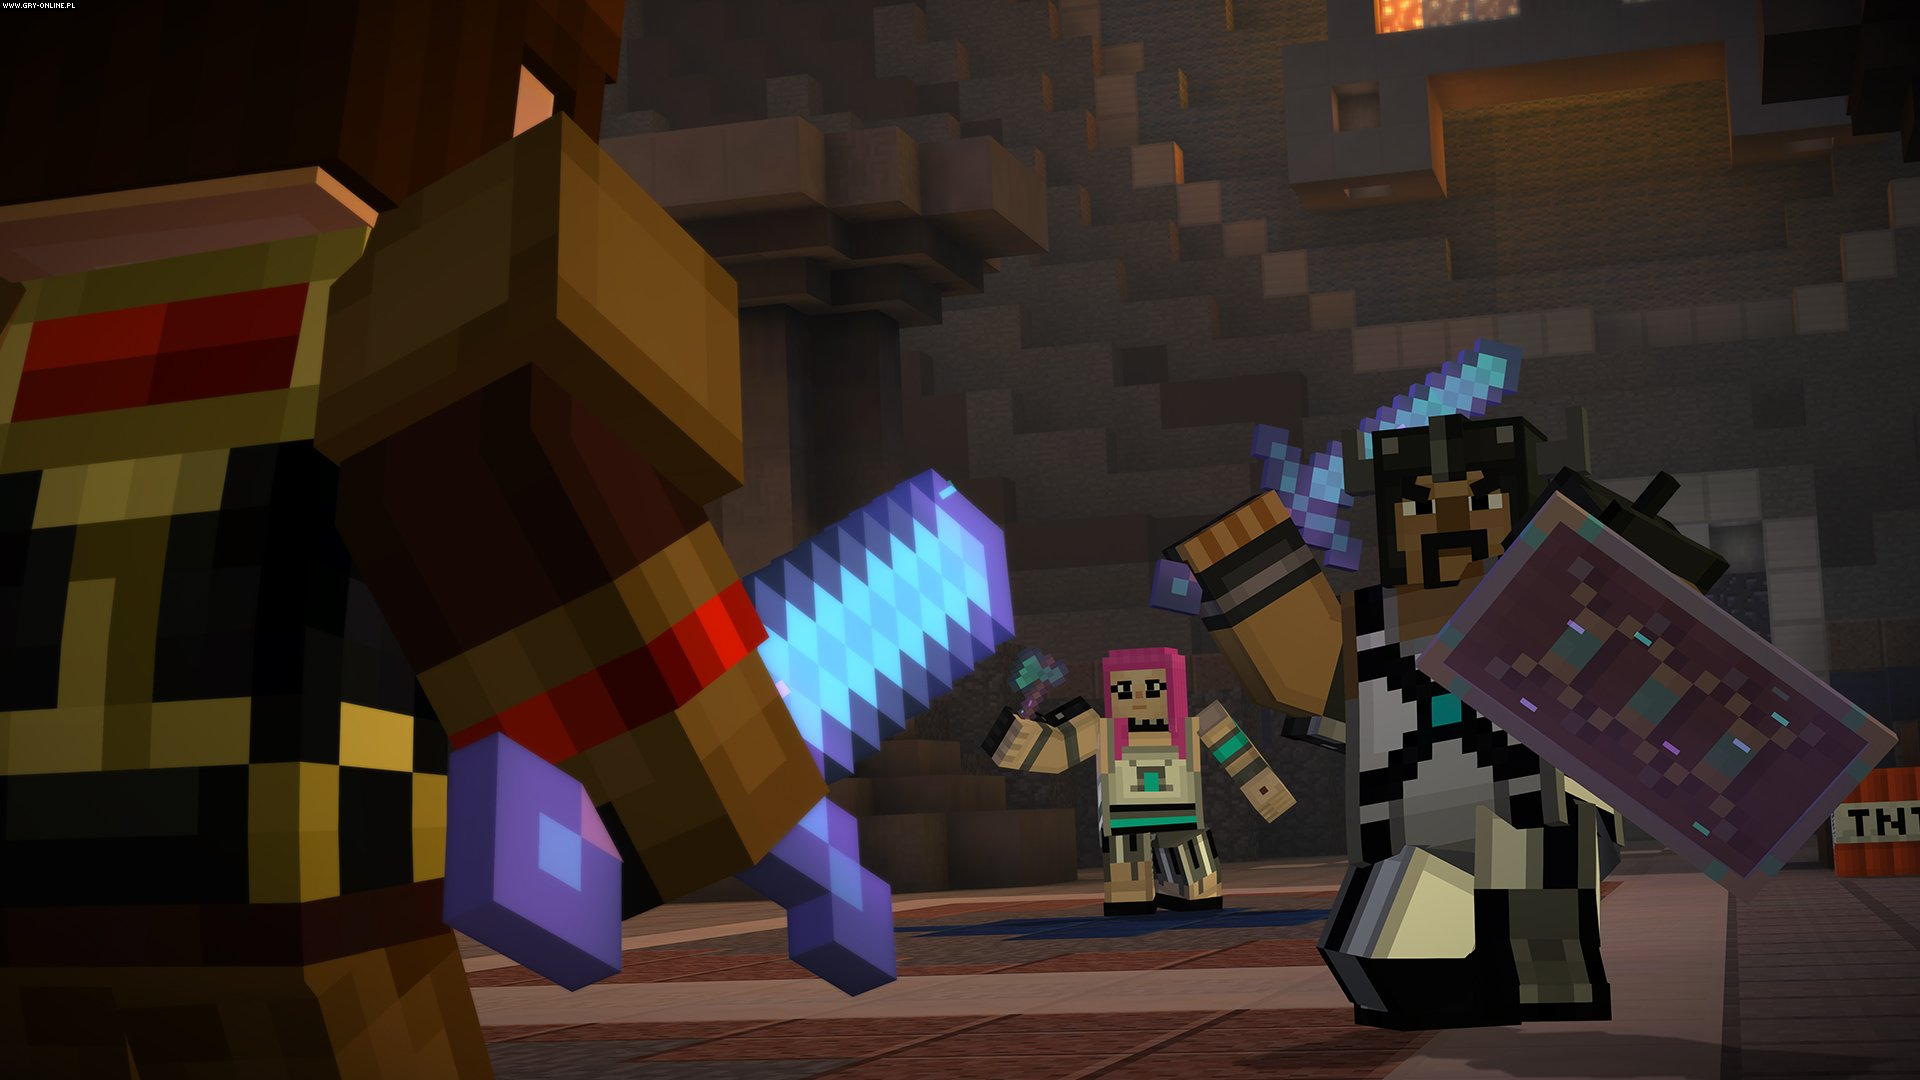 Minecraft: Story Mode - A Telltale Games Series - Season 1 PC, X360, PS3, PS4, XONE Gry Screen 3/54, Telltale Games